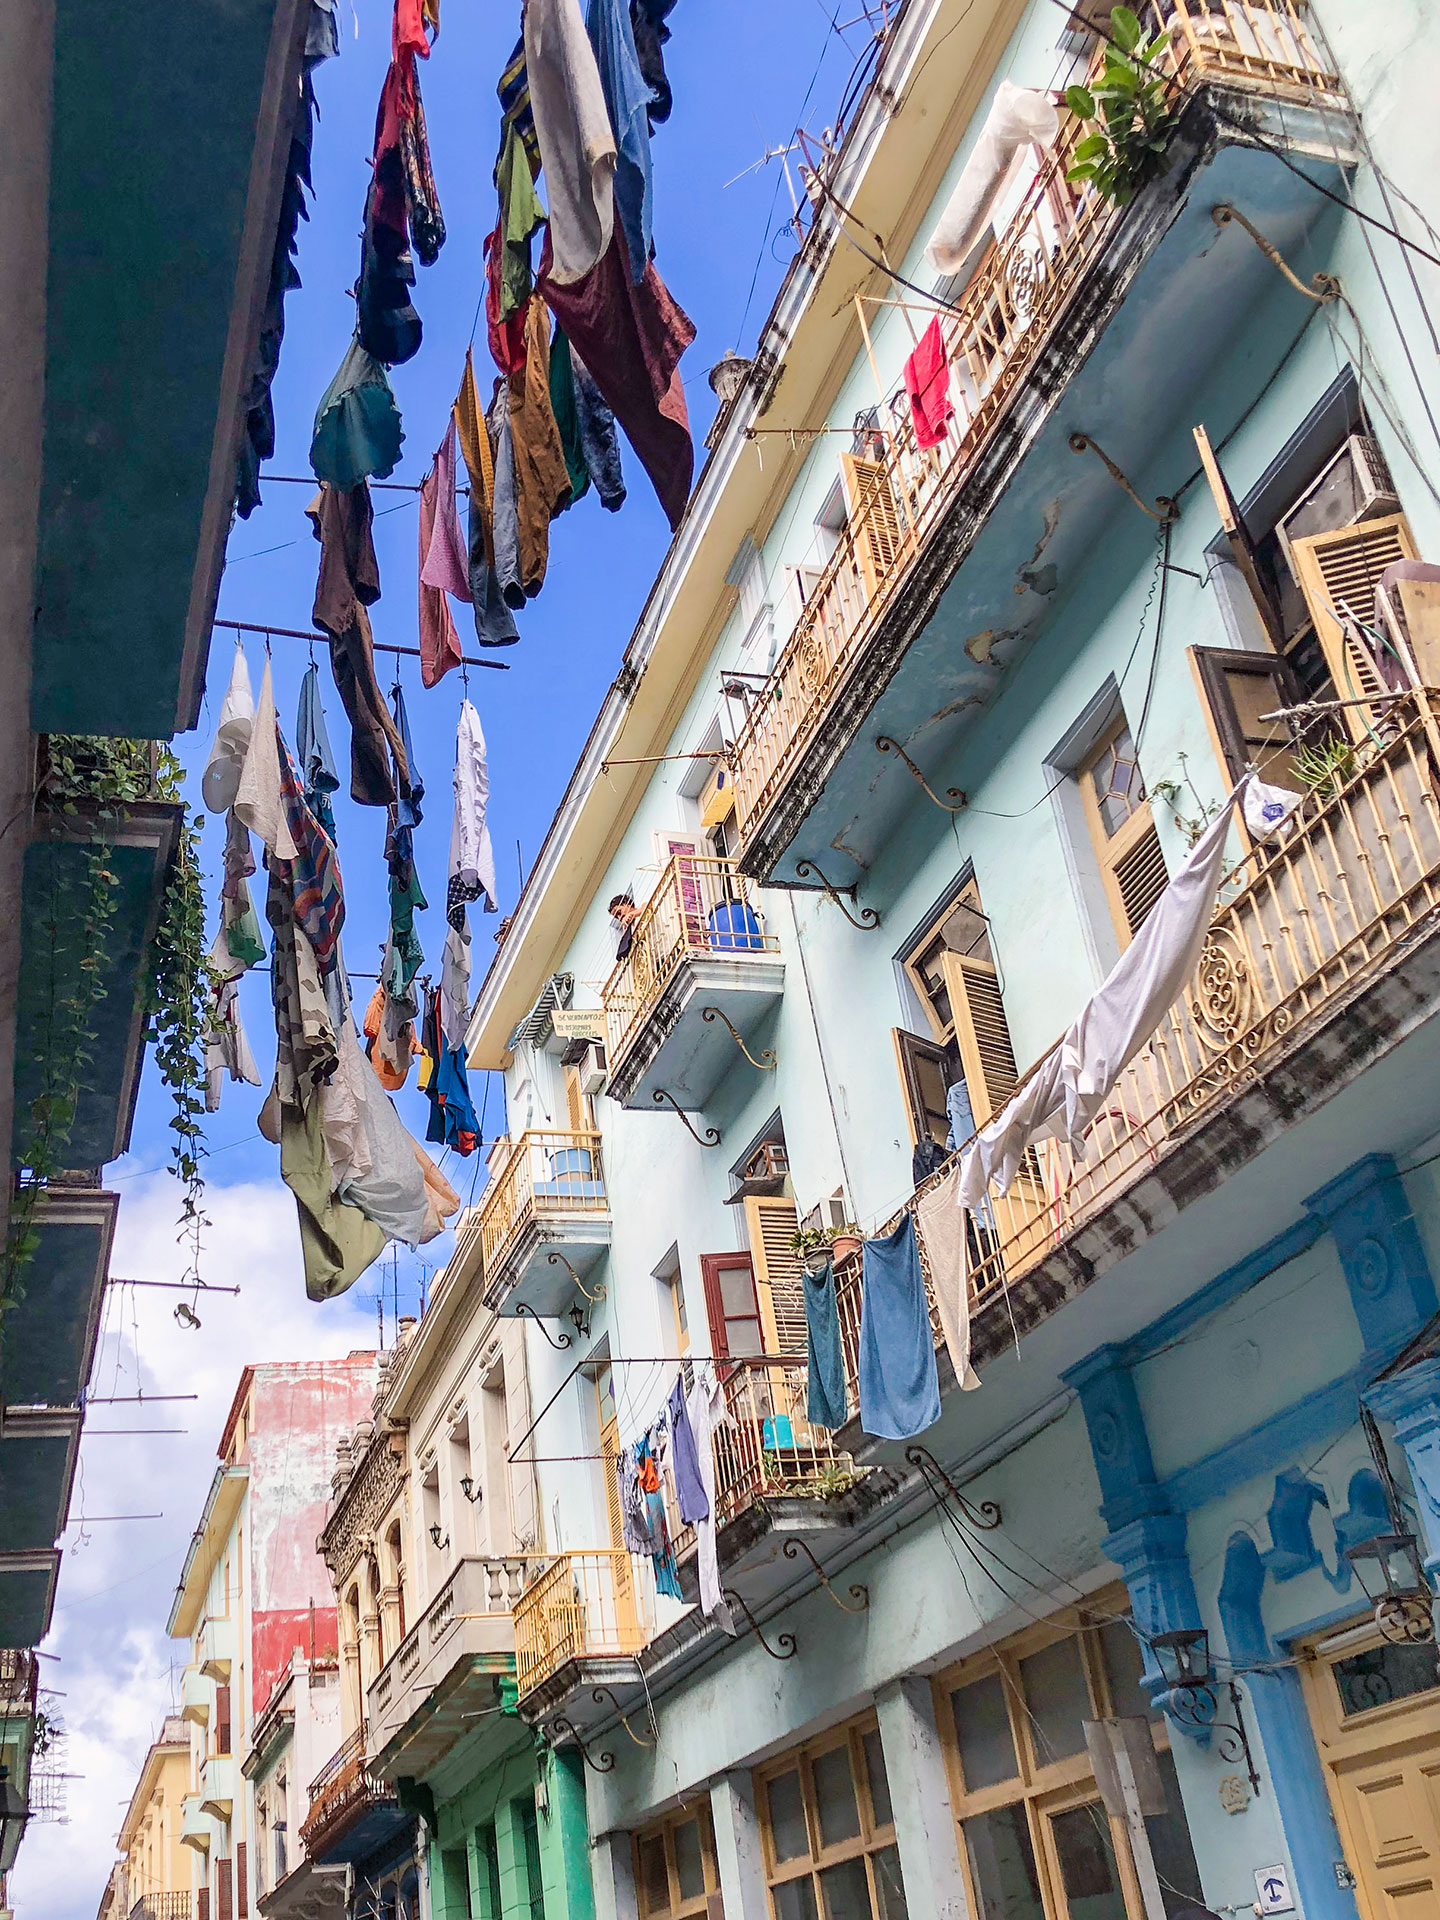 Pictures of the hanging clothes and picturesque buildings in Havana, Cuba